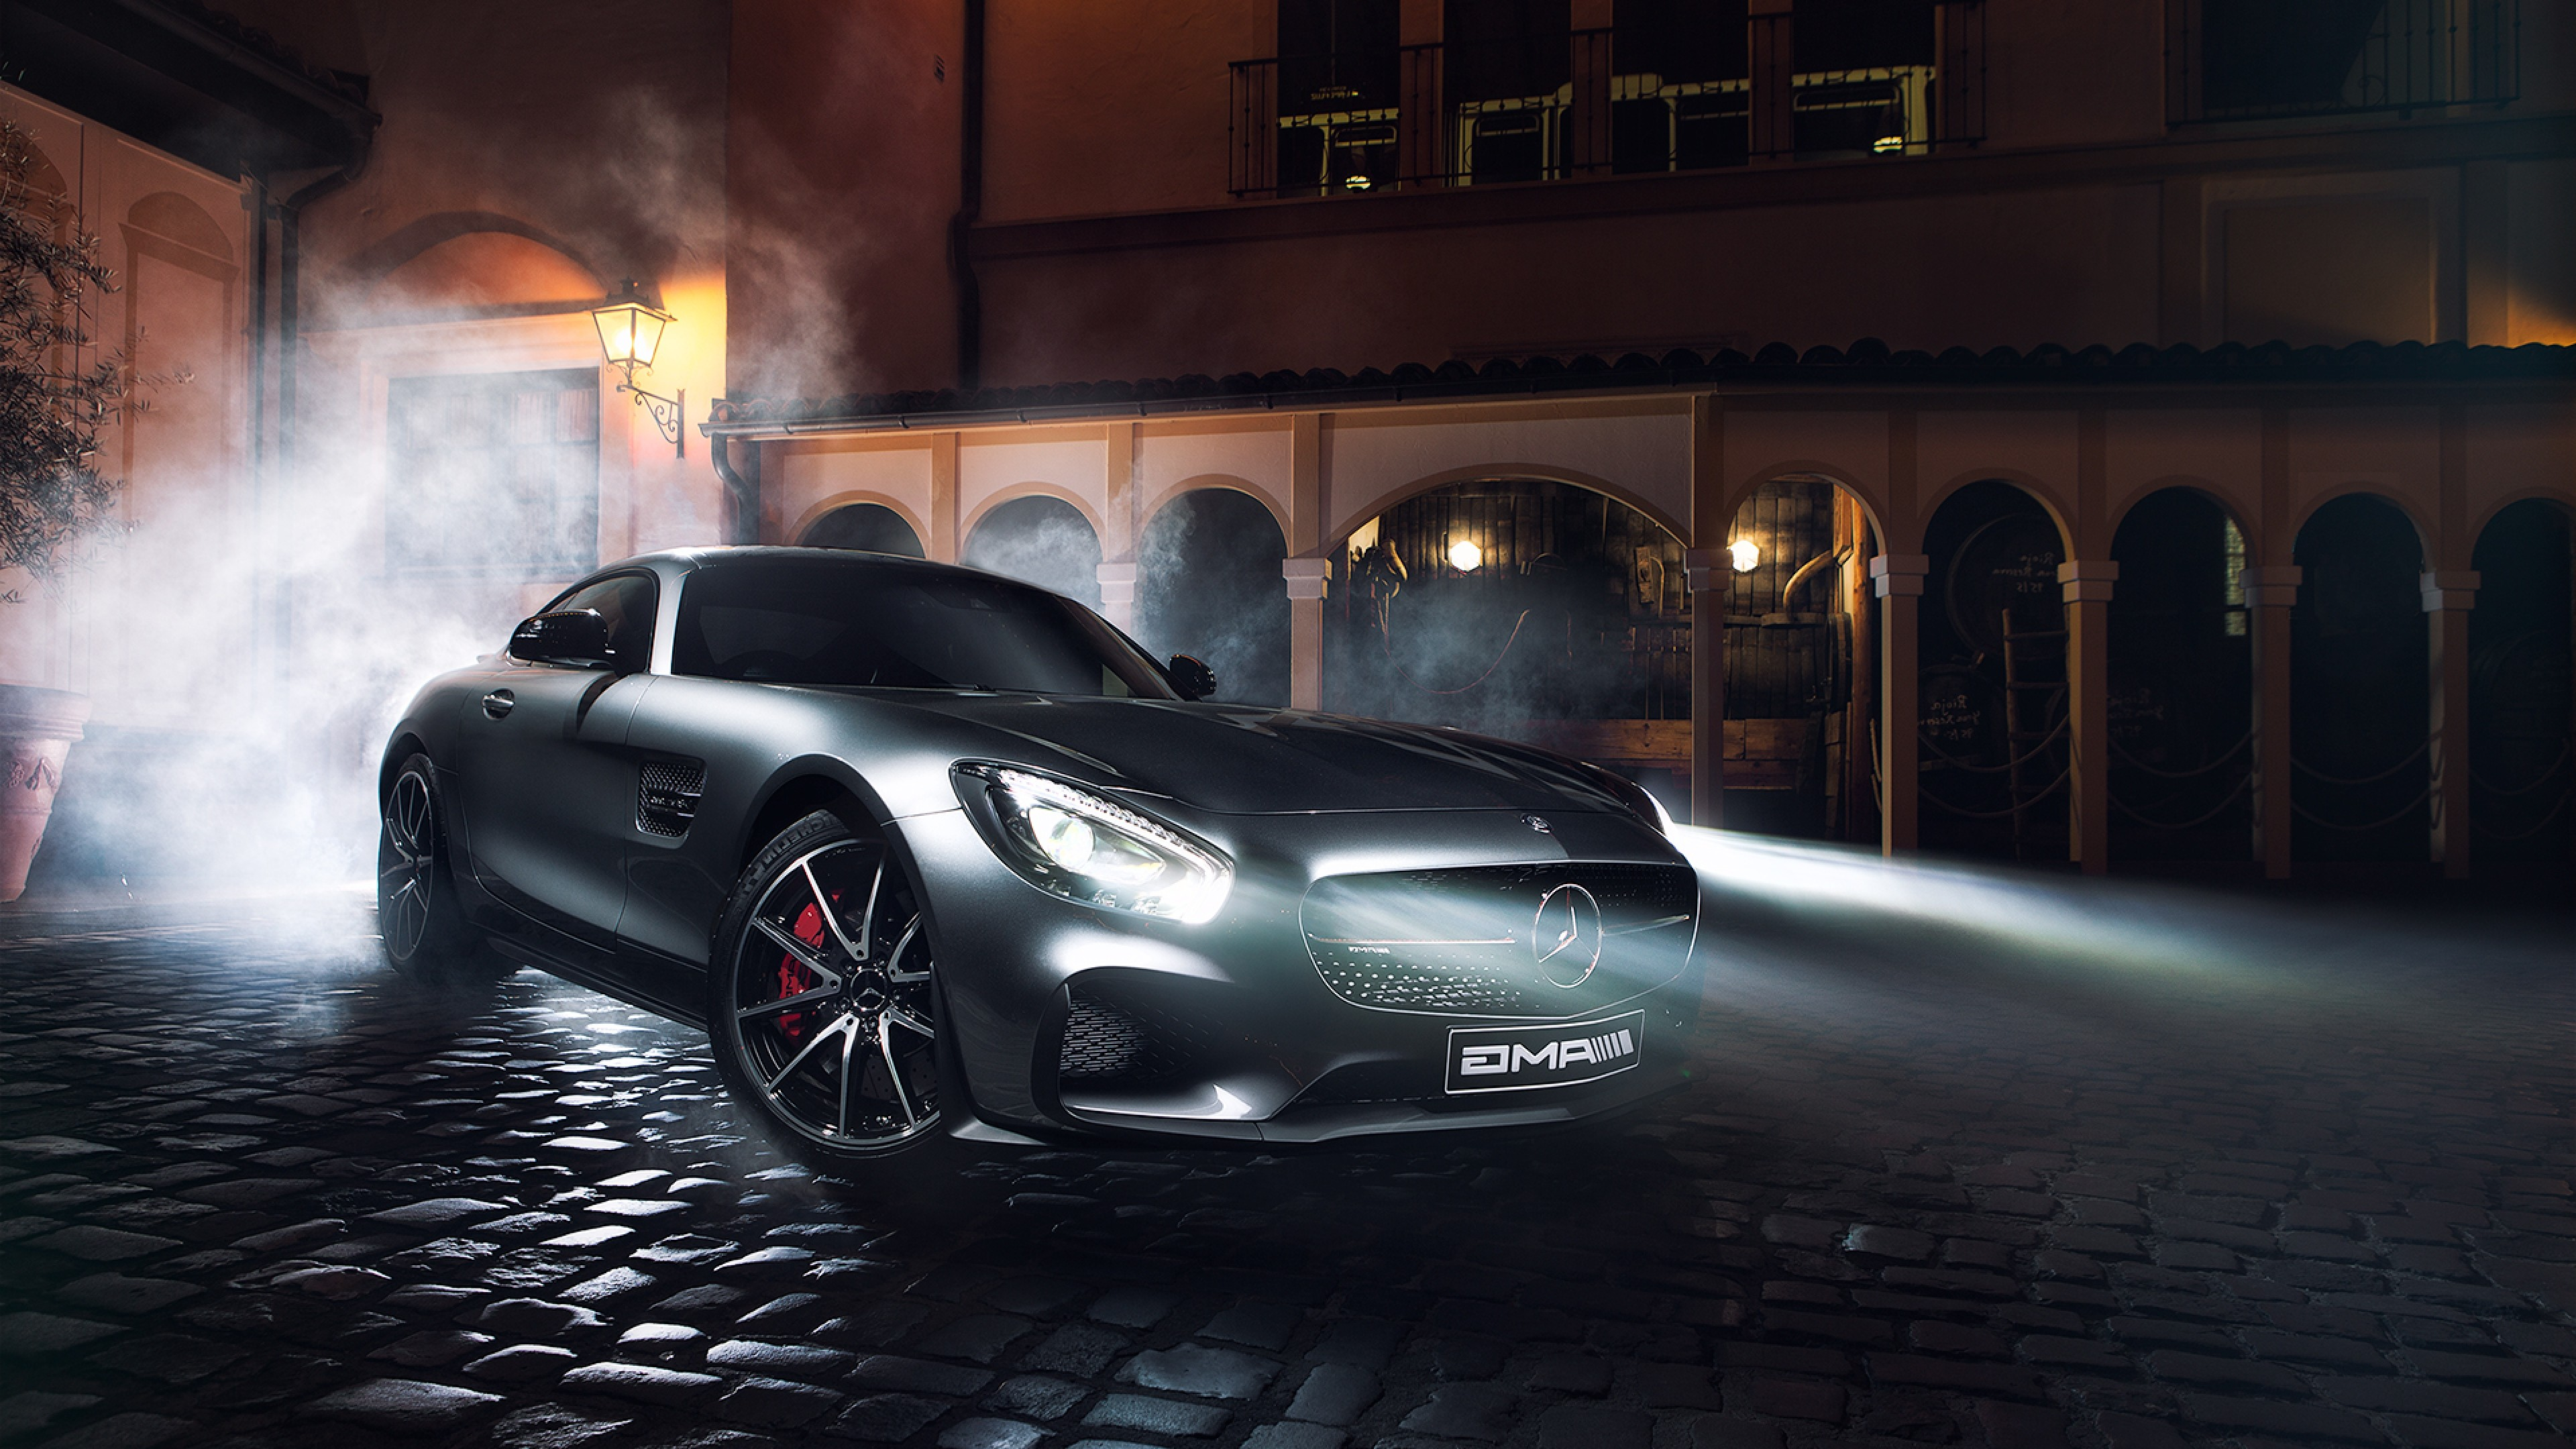 Mercedes Benz Amg GTS, HD Cars, 4k Wallpapers, Images ...